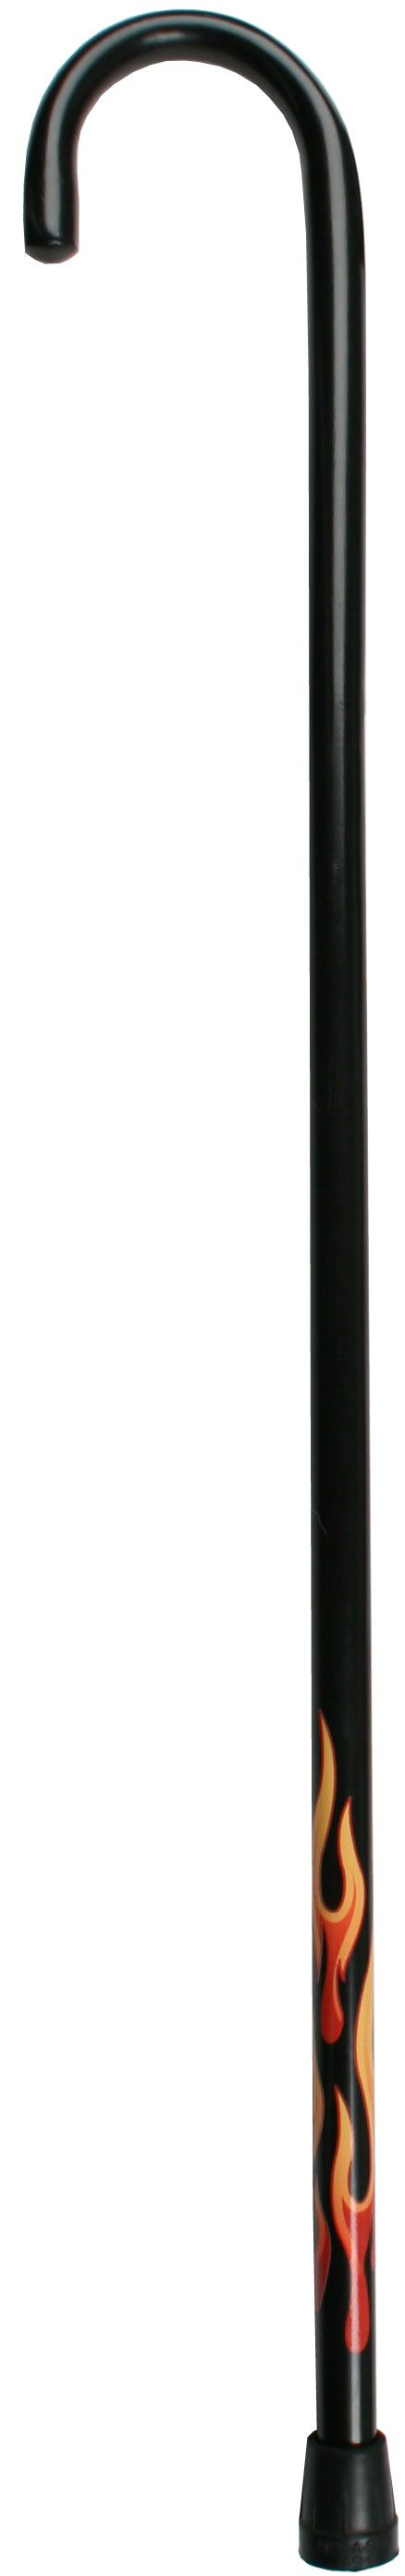 Lowest Prices on Folding Canes.